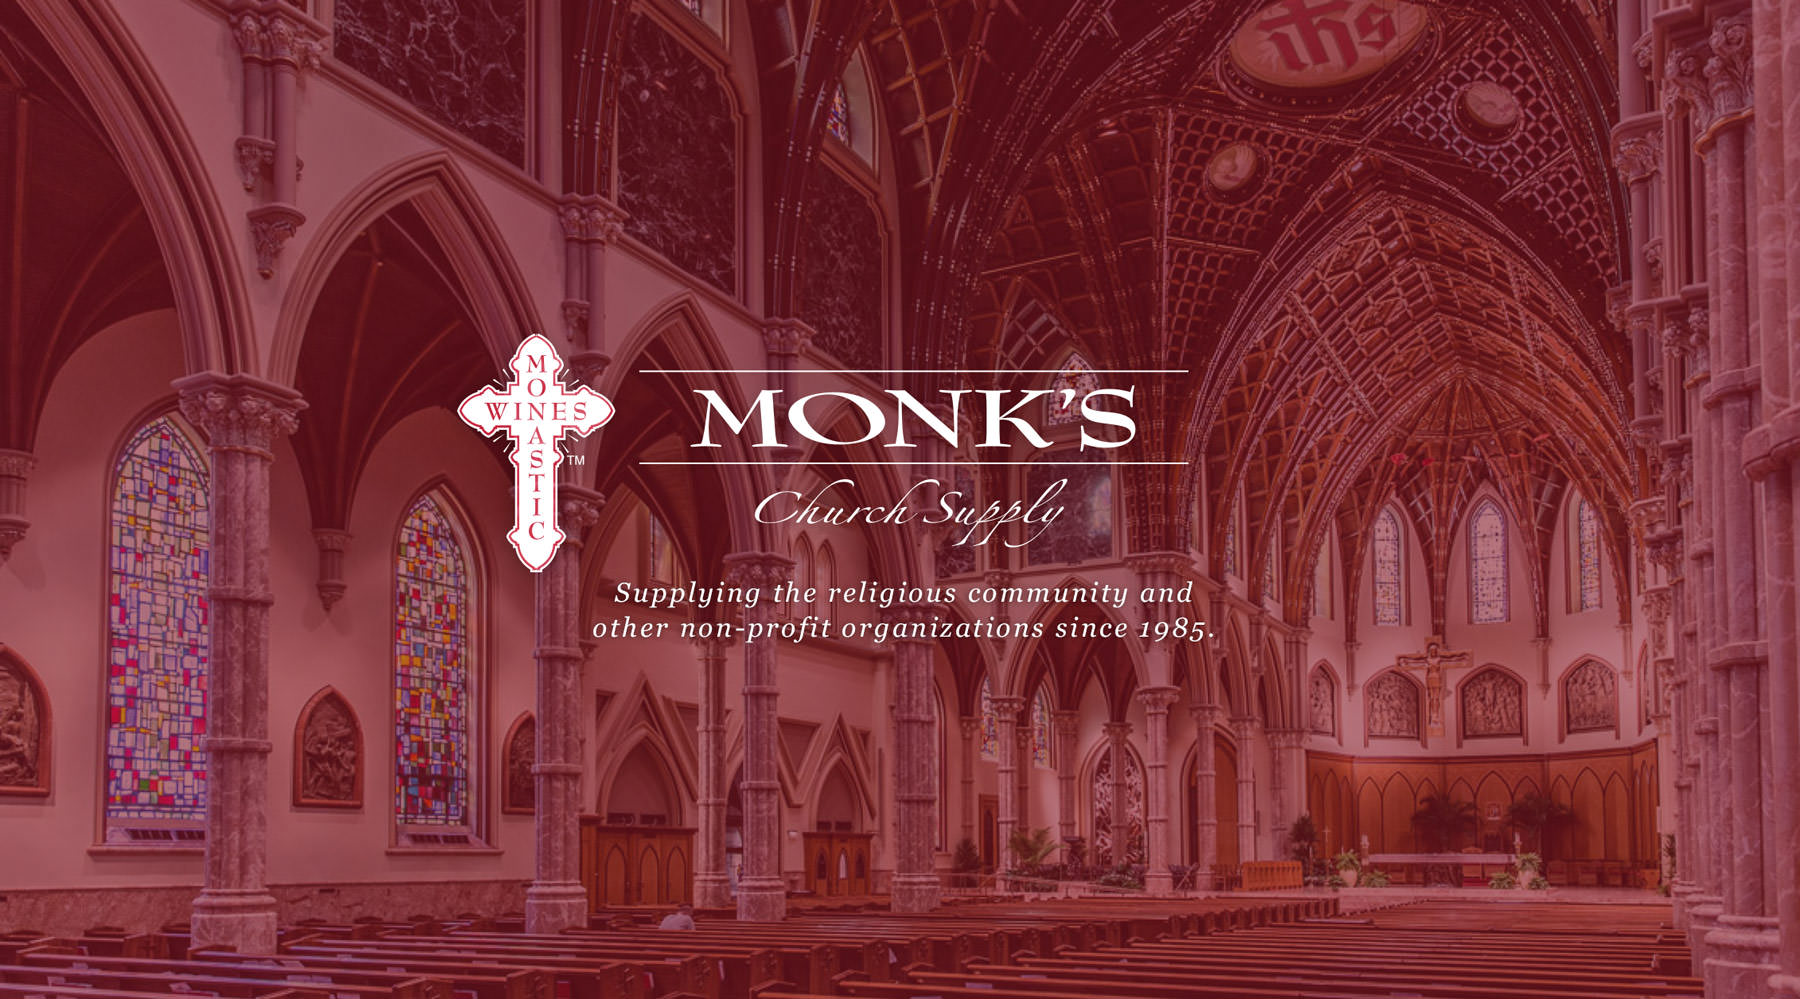 Monk's Church Supply - Supplying the religious community and other non-profit organizations since 1985.